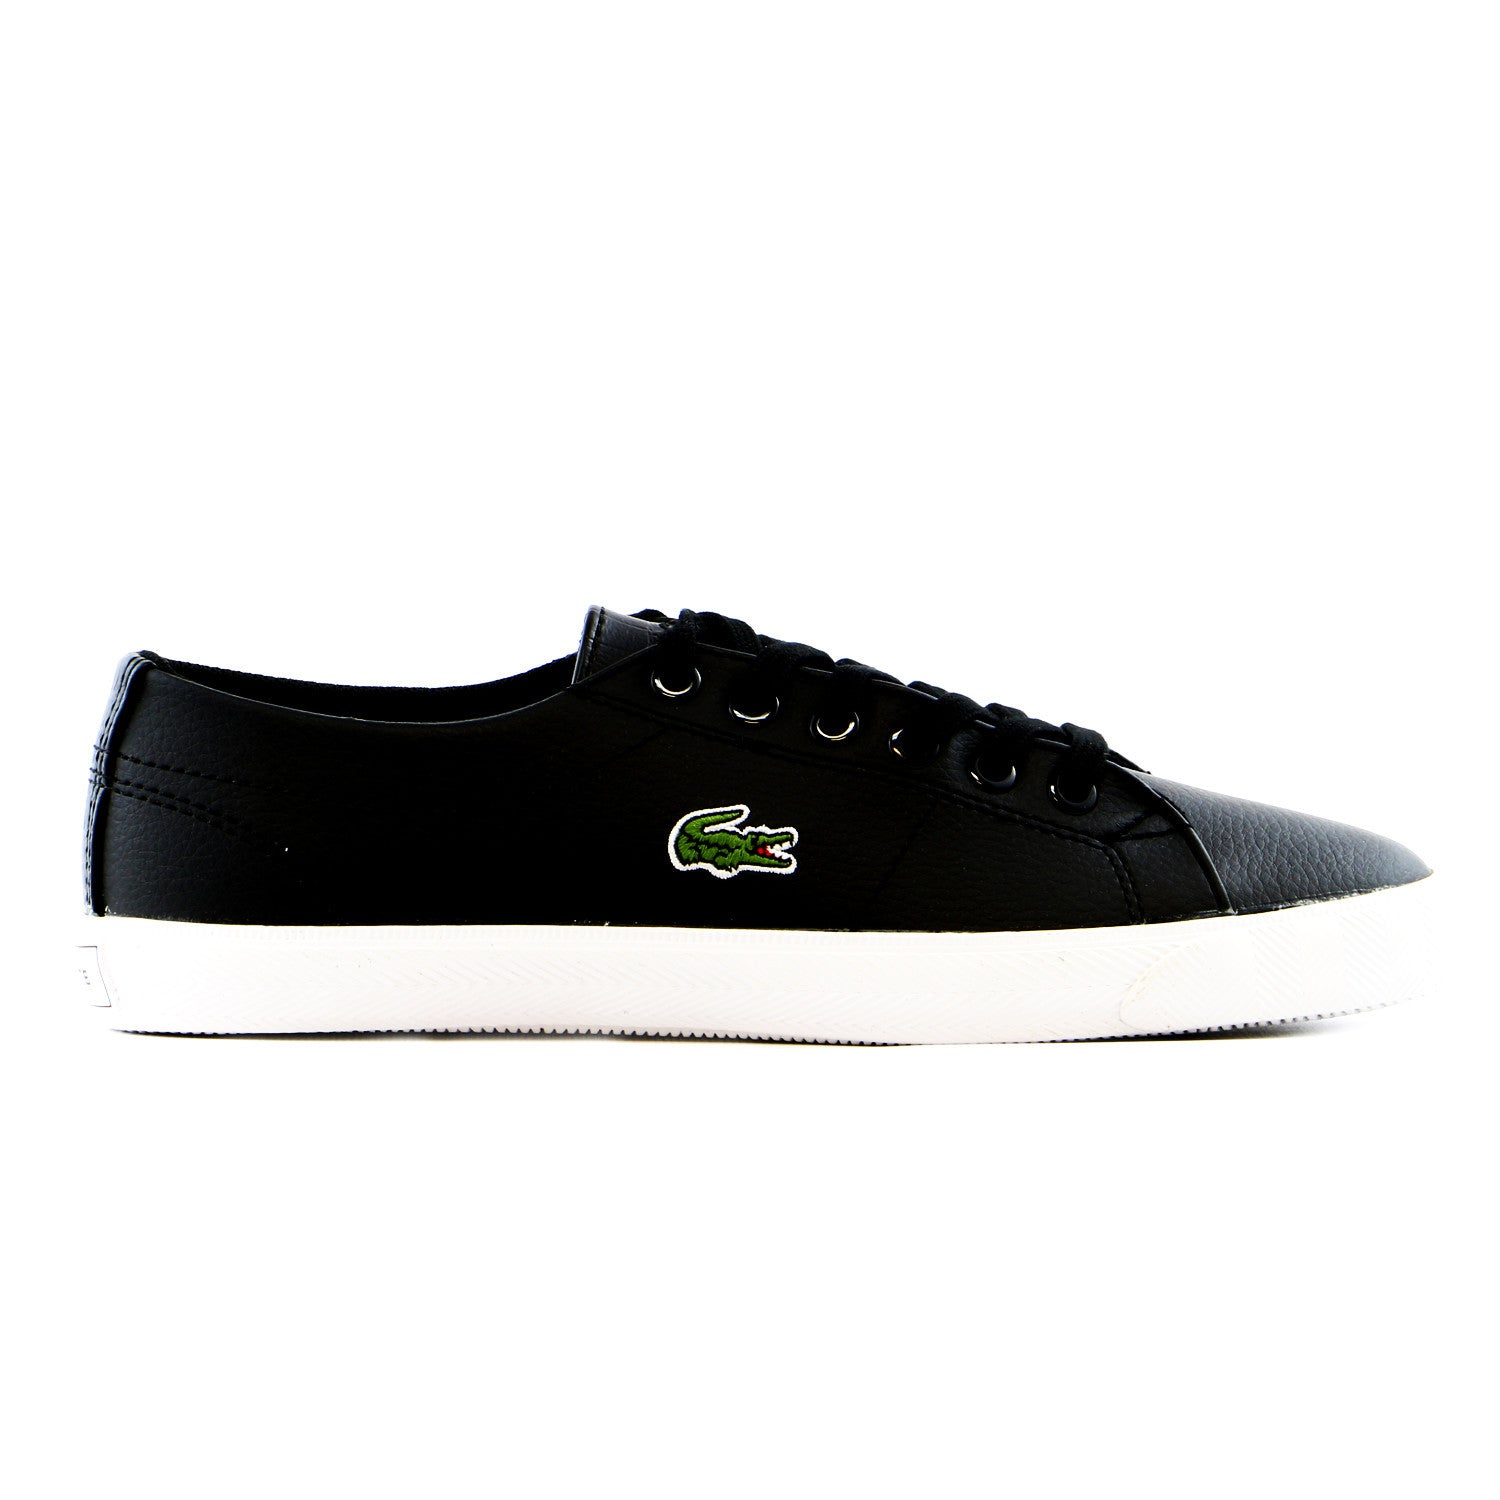 07cbbdf74d88 Lacoste Youth Marcel GT2 - Black Black - Boys - Shoplifestyle